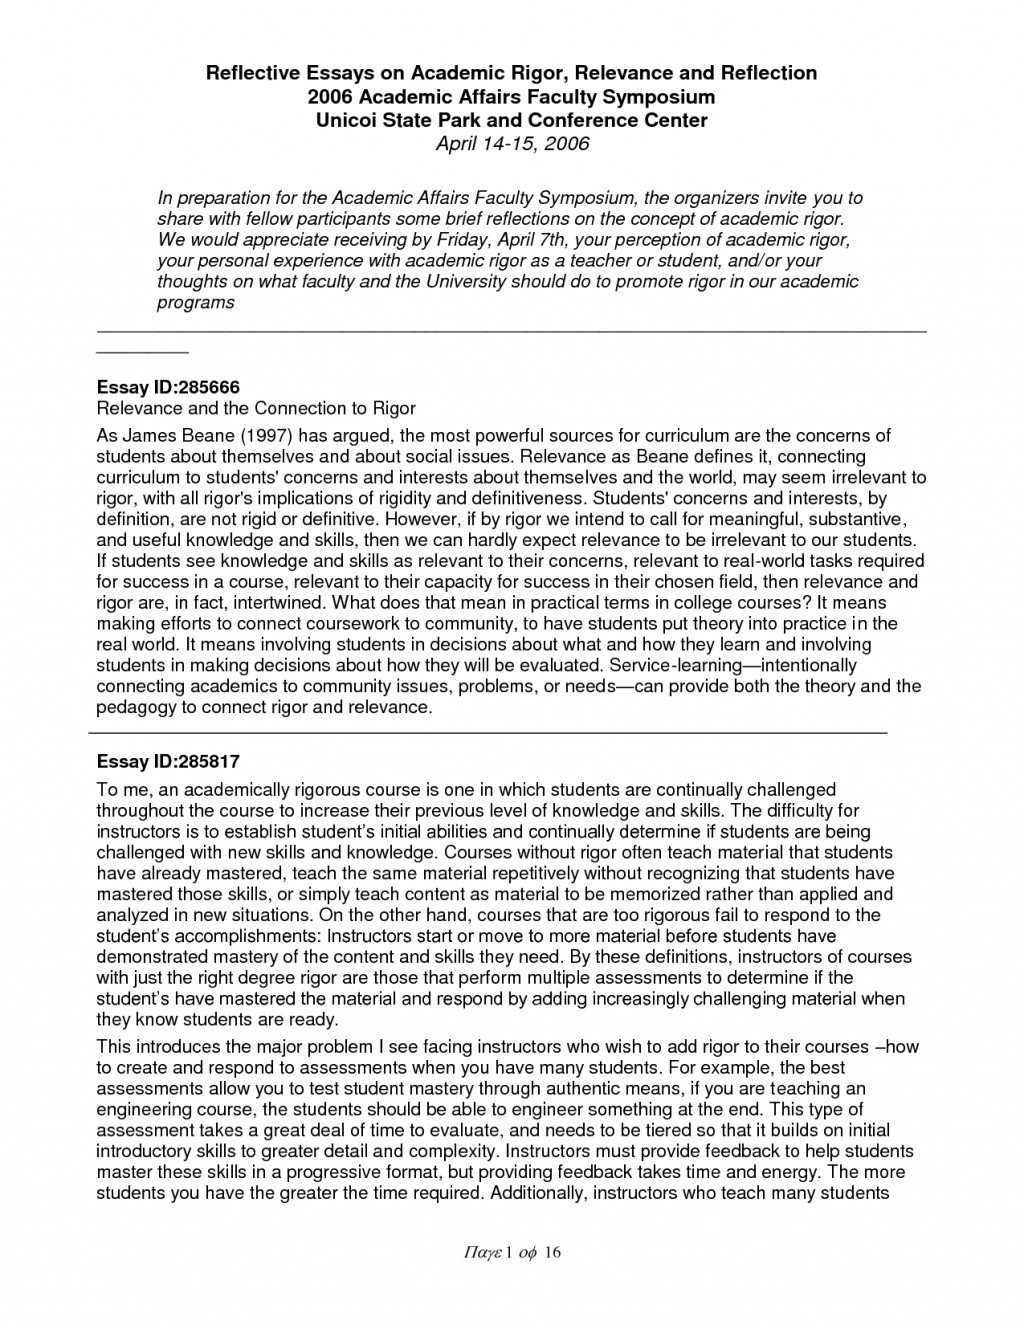 006 Academic Essays Essay Example Writing Examples Good Cover Letter Samples How To Write An Youtube Coles Thecolossus Co Throu Sample Pdf Conclusion Ppt Introduction Ielts Plan Magnificent Database Large